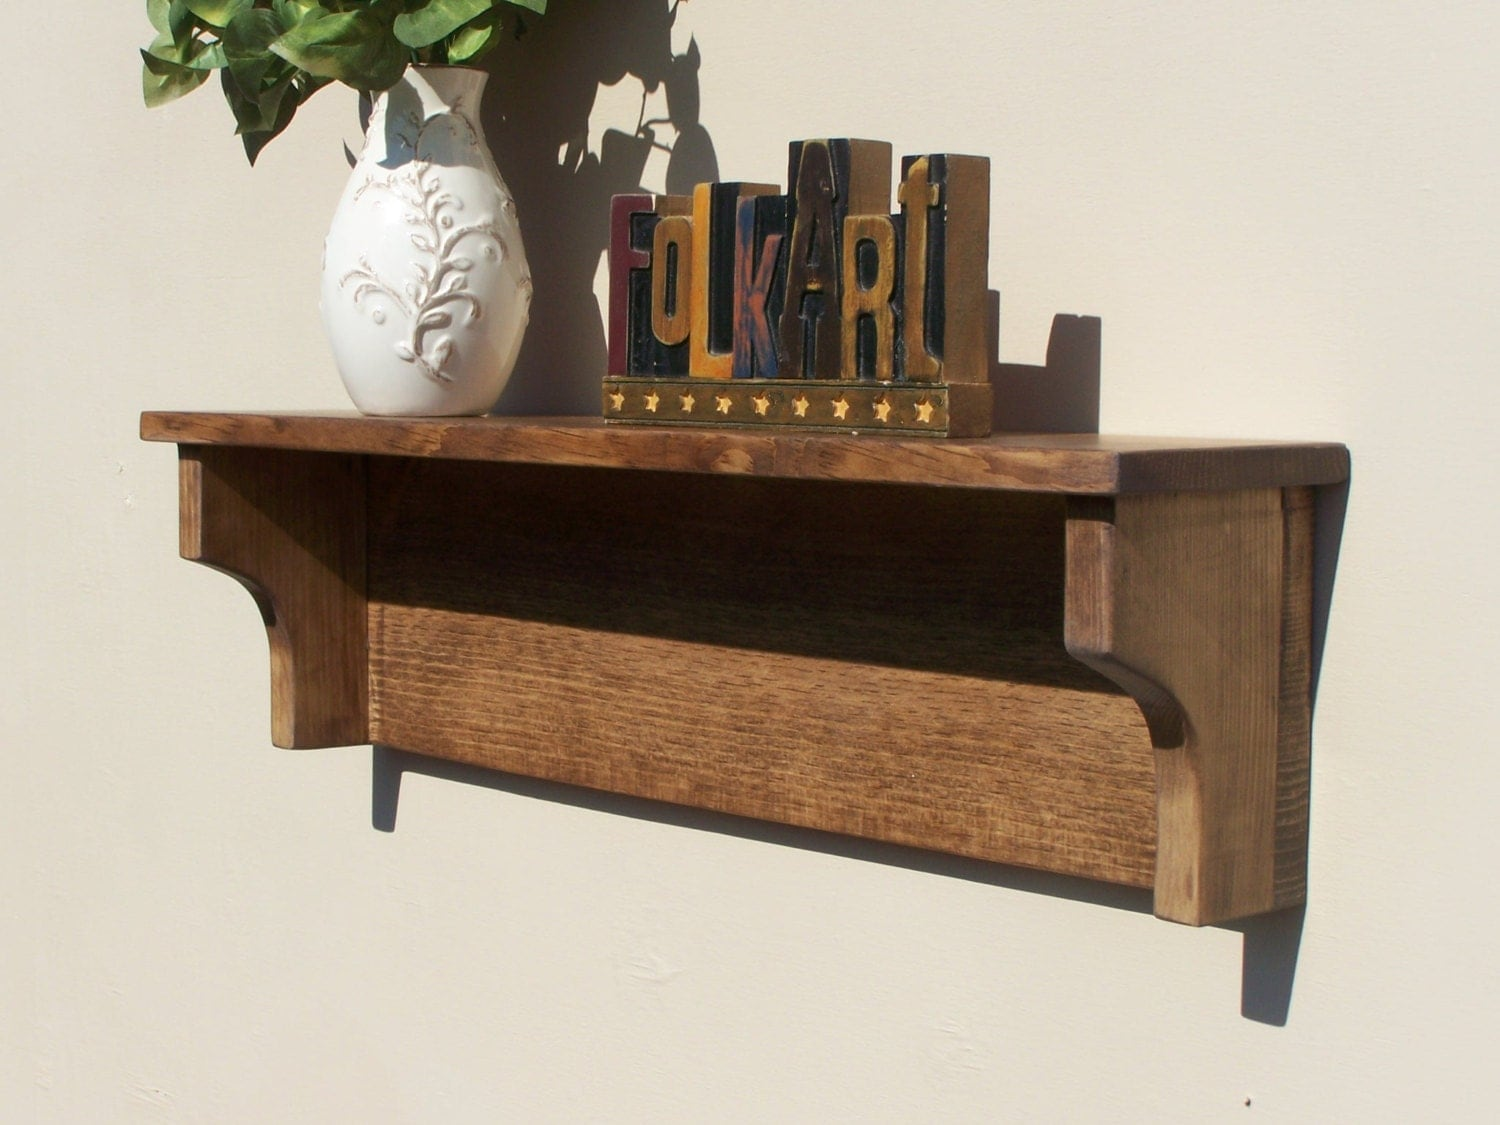 Rustic Wooden Wall Shelf Bathroom Living Room Kitchen Walnut